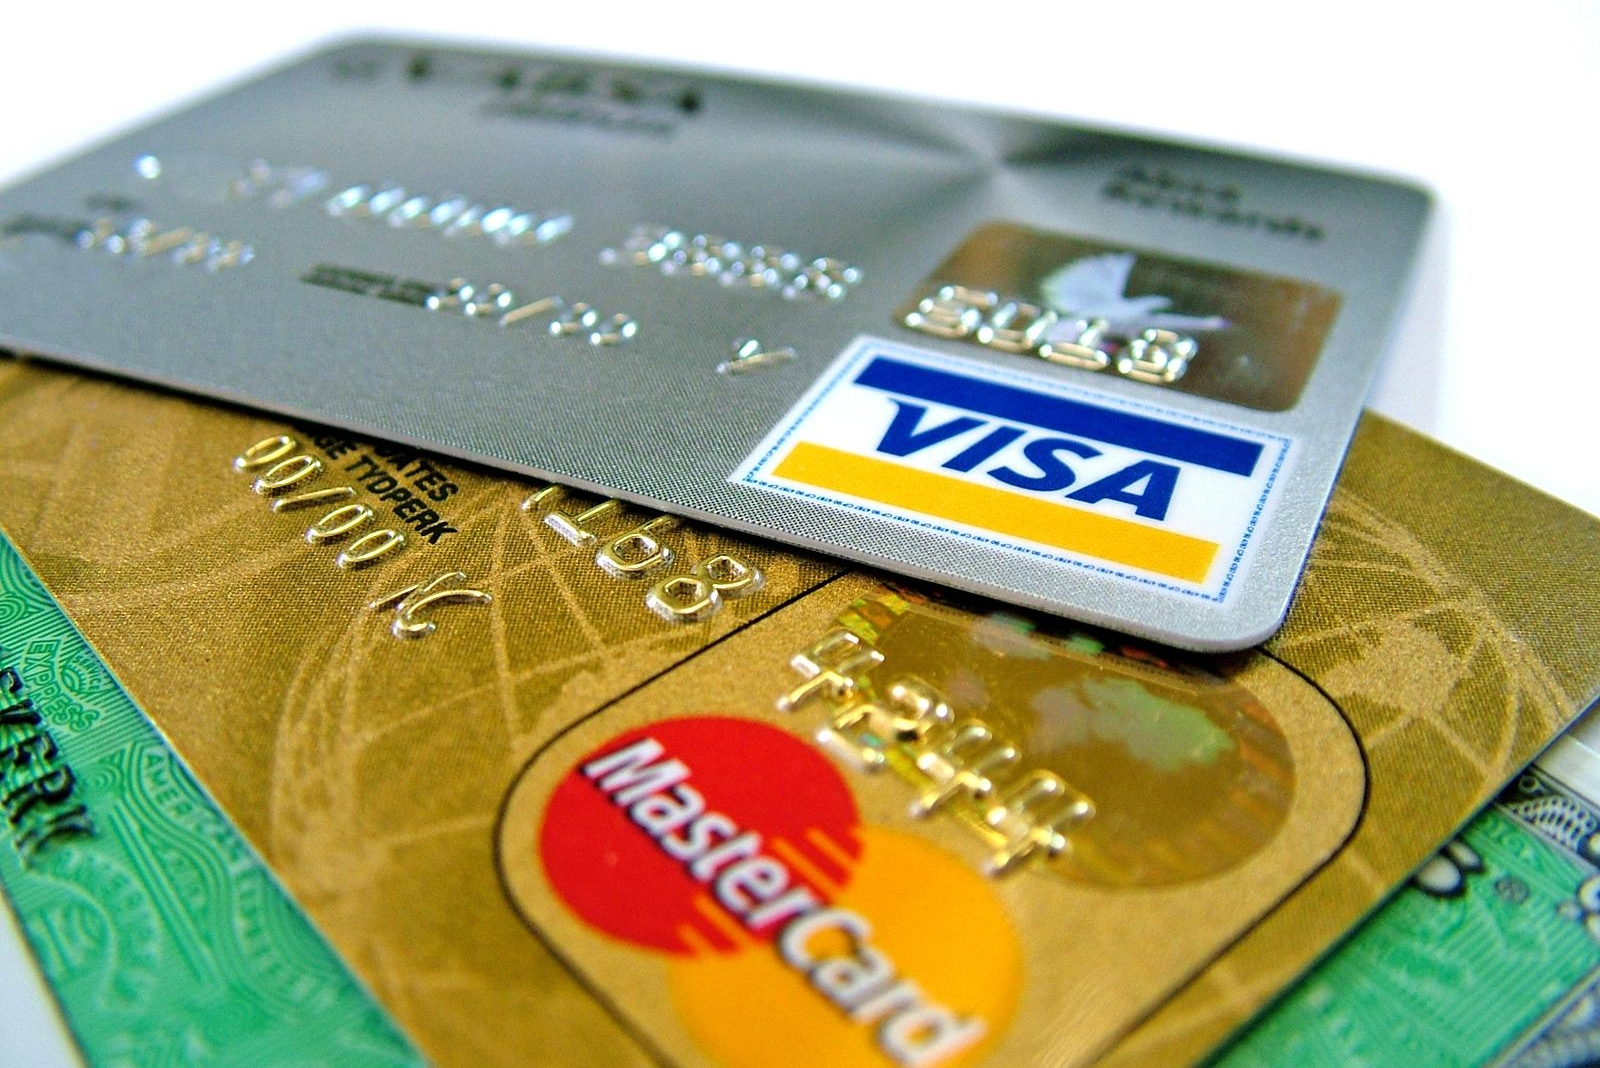 Just 4 purchases enough to ID you, despite anonymized credit card data (use cash)